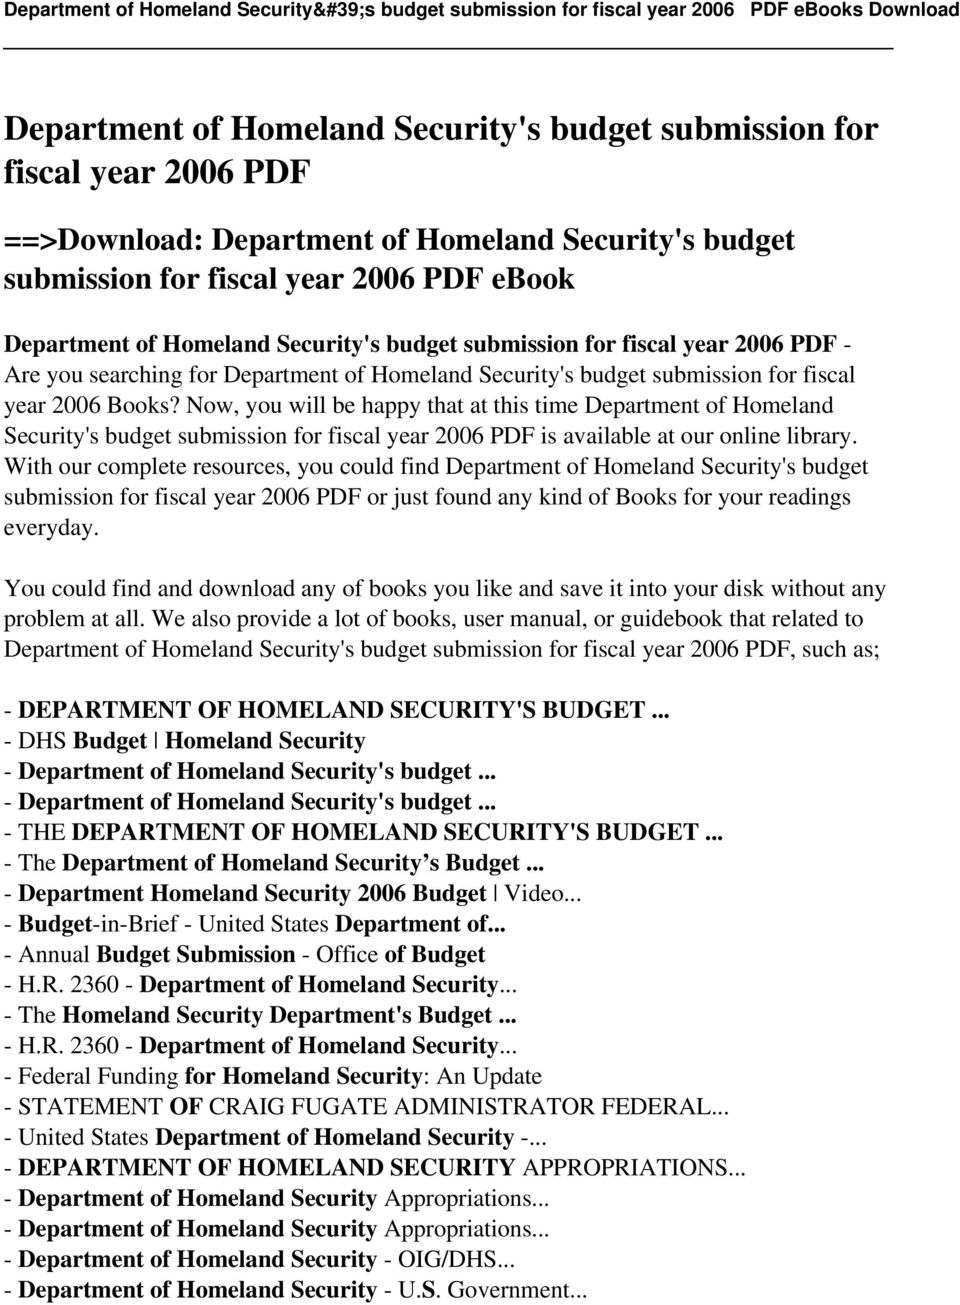 Now, you will be happy that at this time Department of Homeland Security's budget submission for fiscal year 2006 PDF is available at our online library.